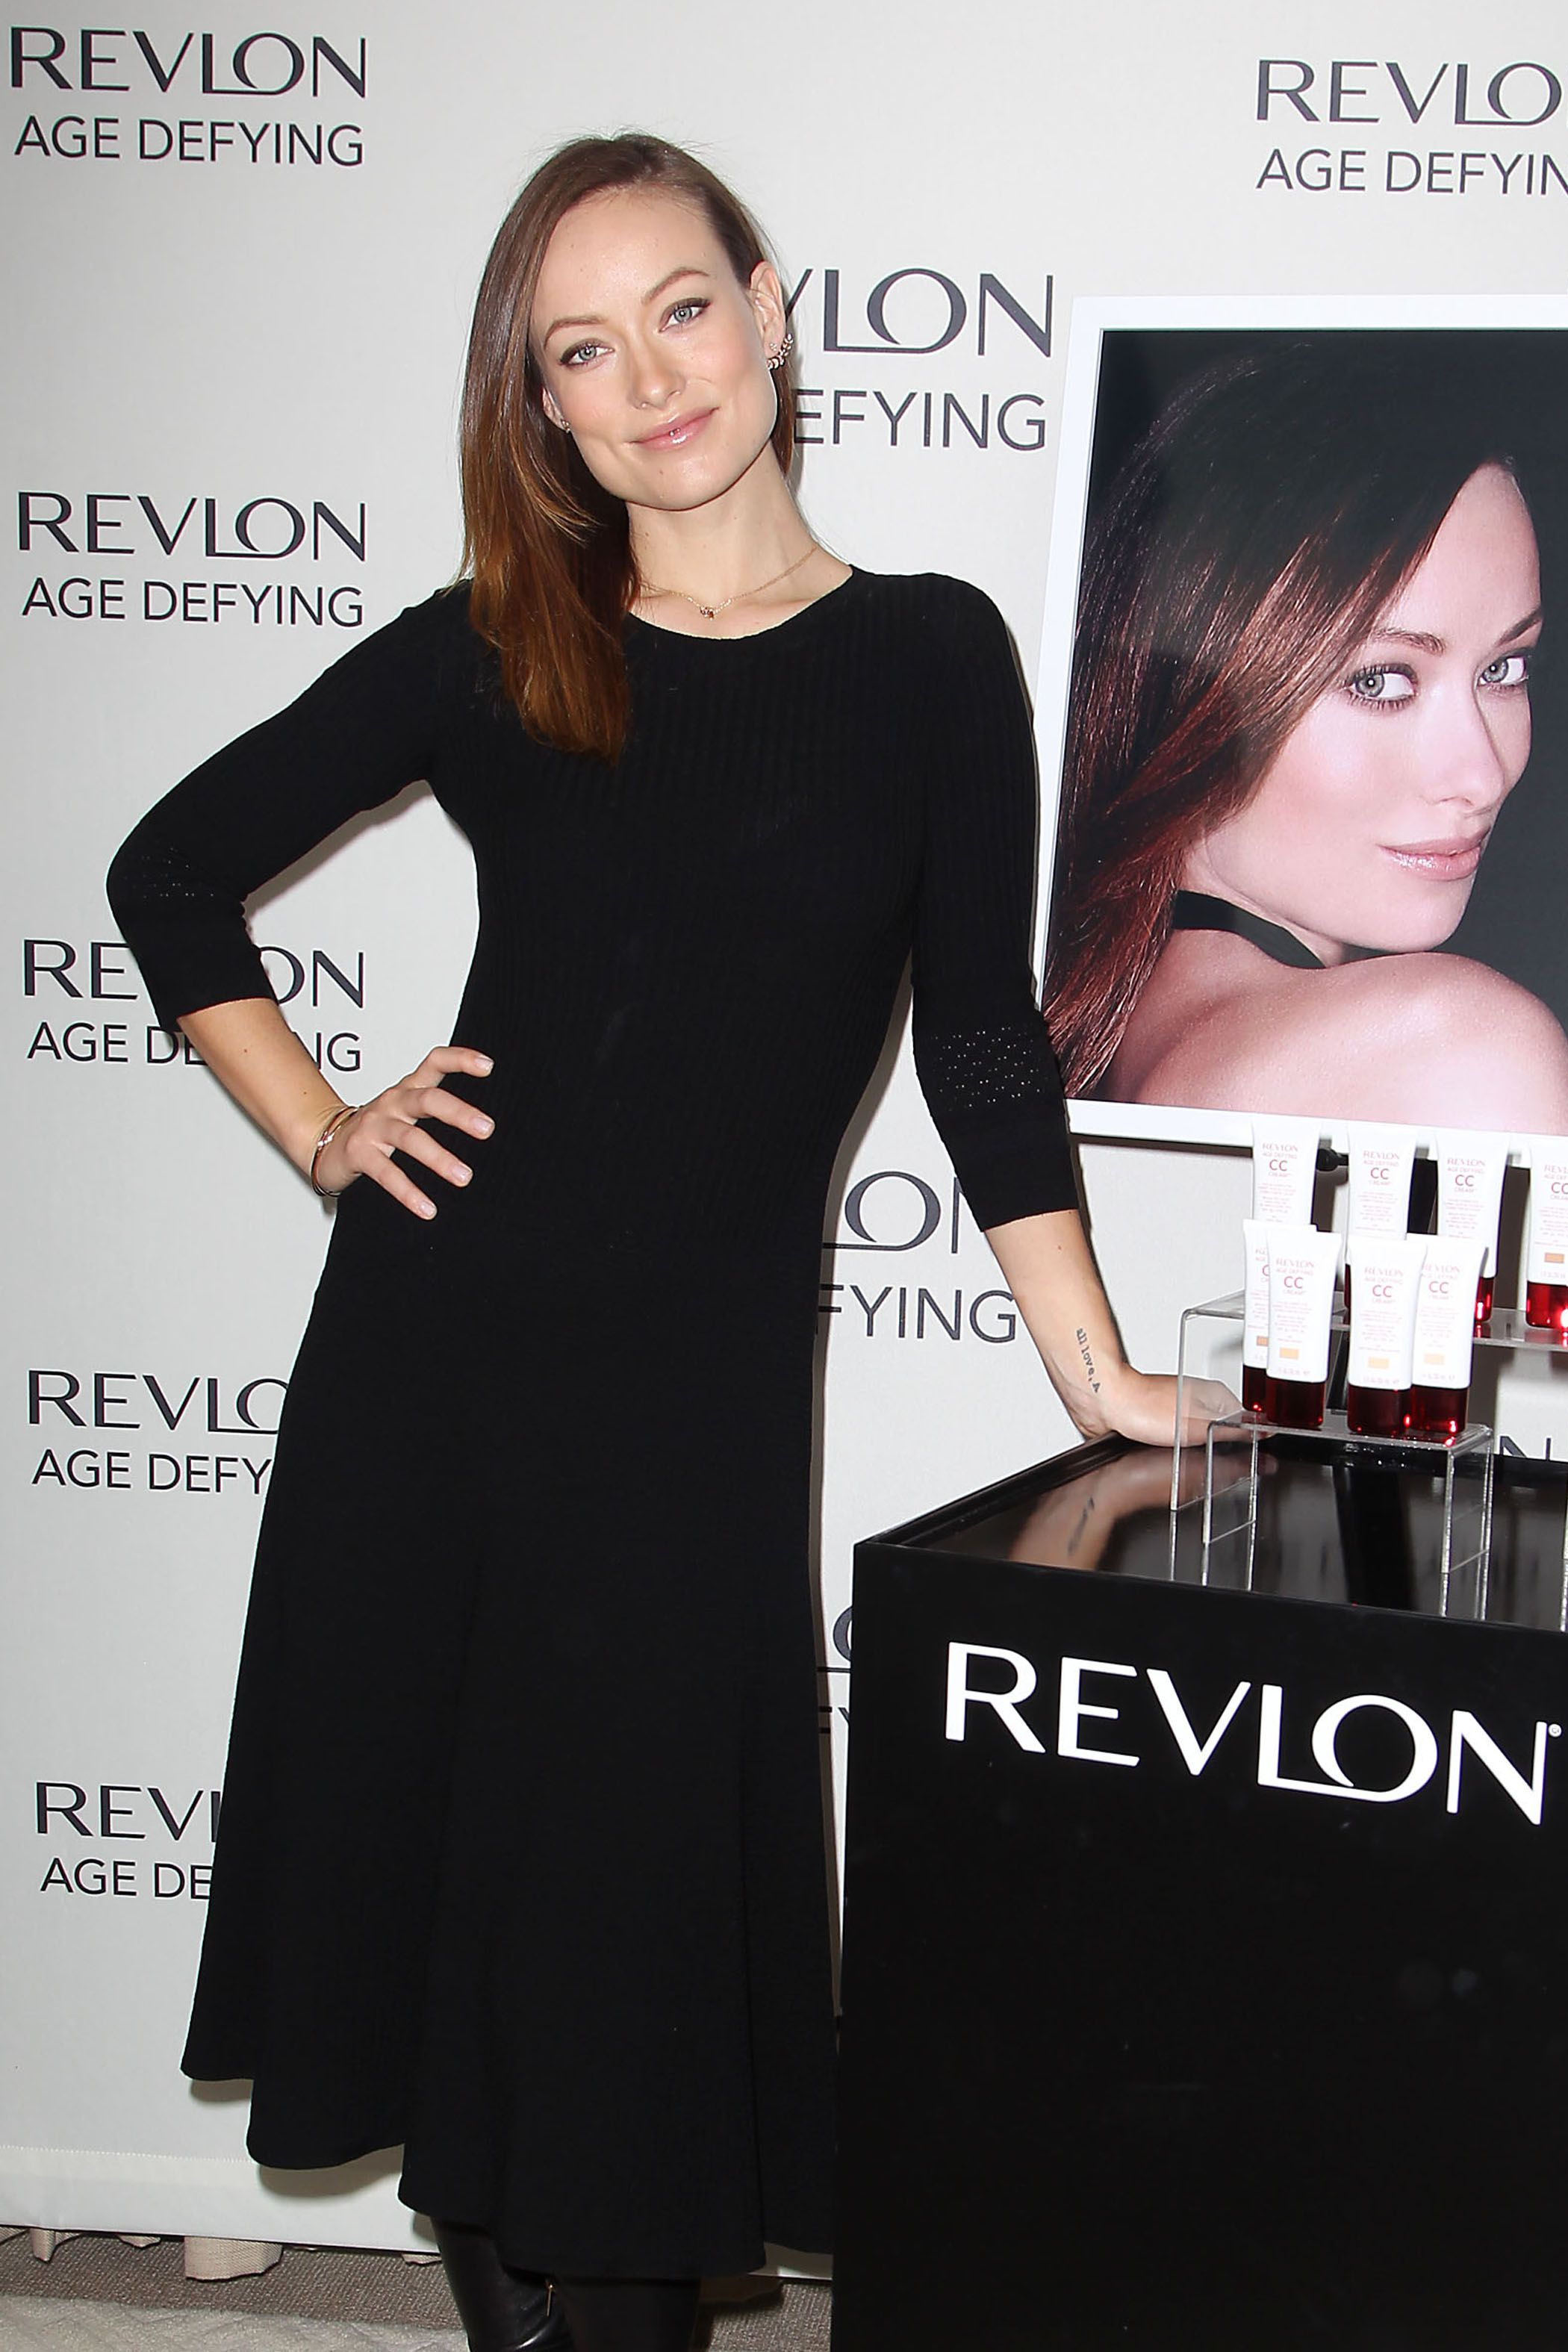 Olivia Wilde Talks Aging, Exercise, And More...